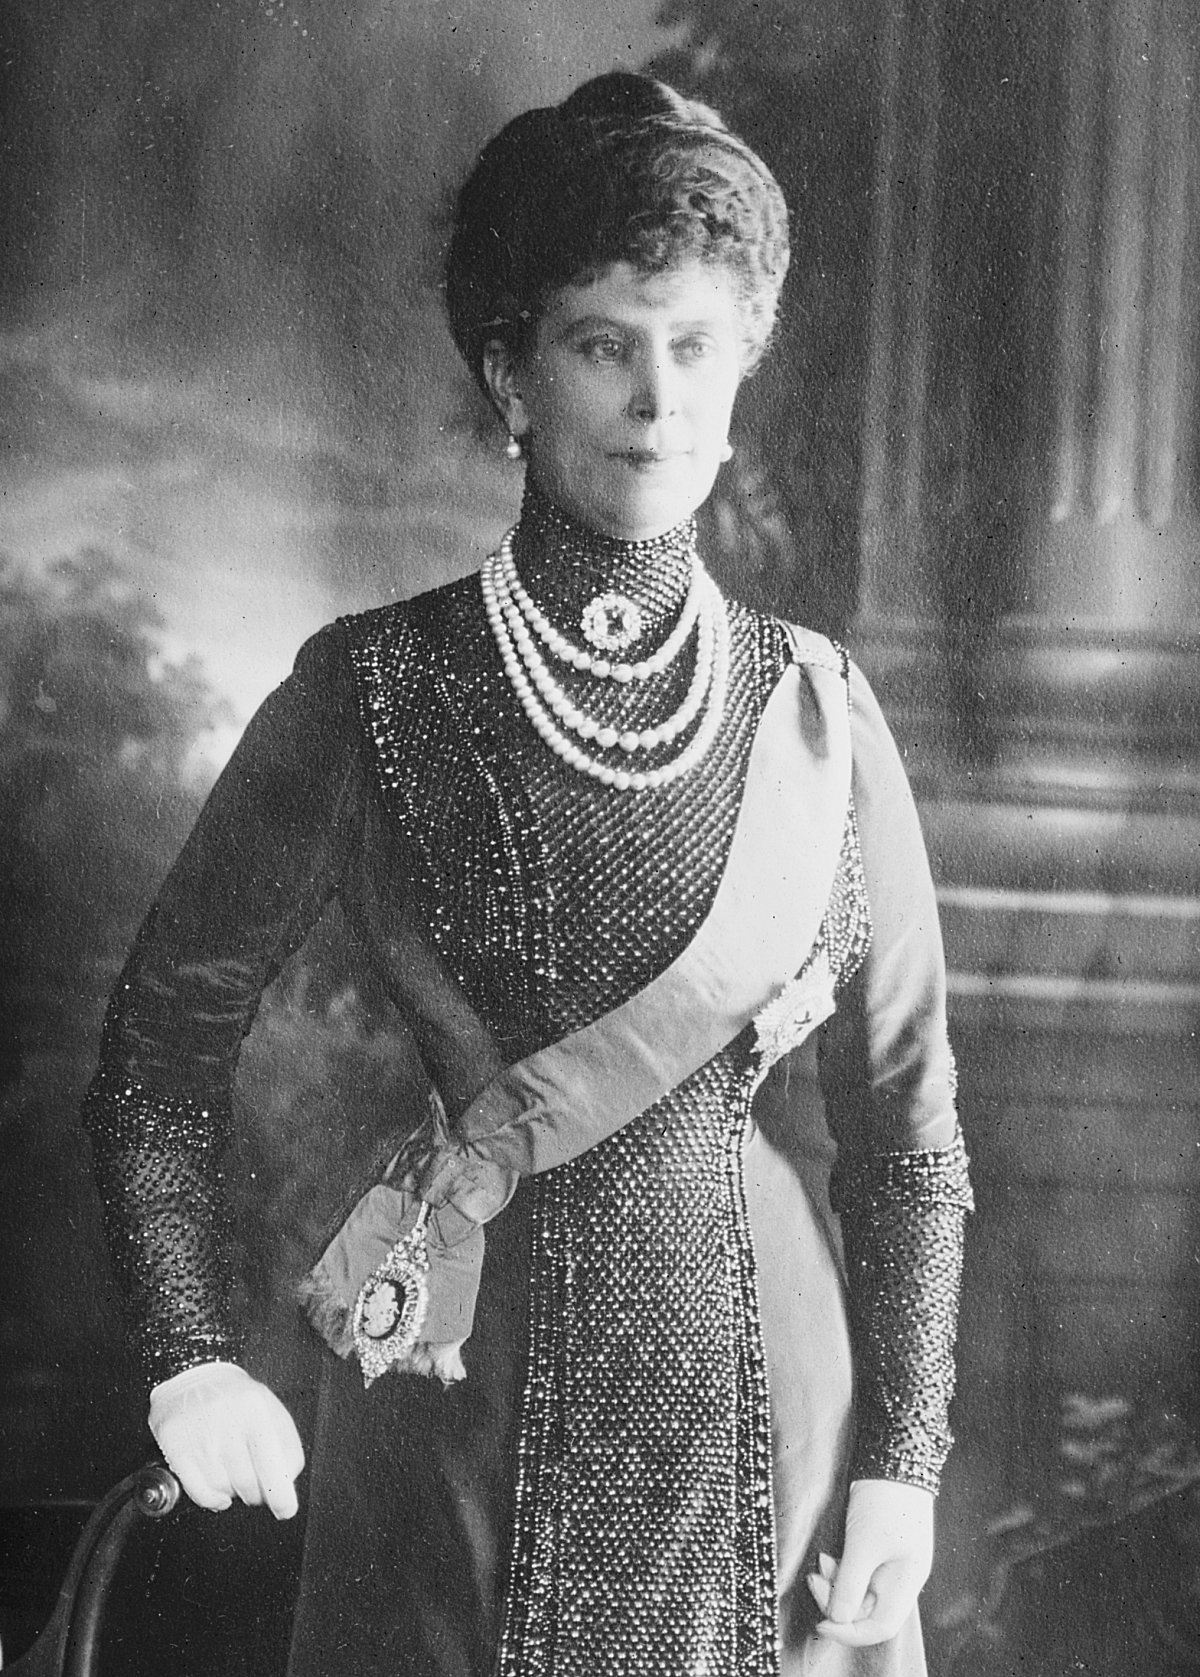 Queen Mary of the United Kingdom, July 1911